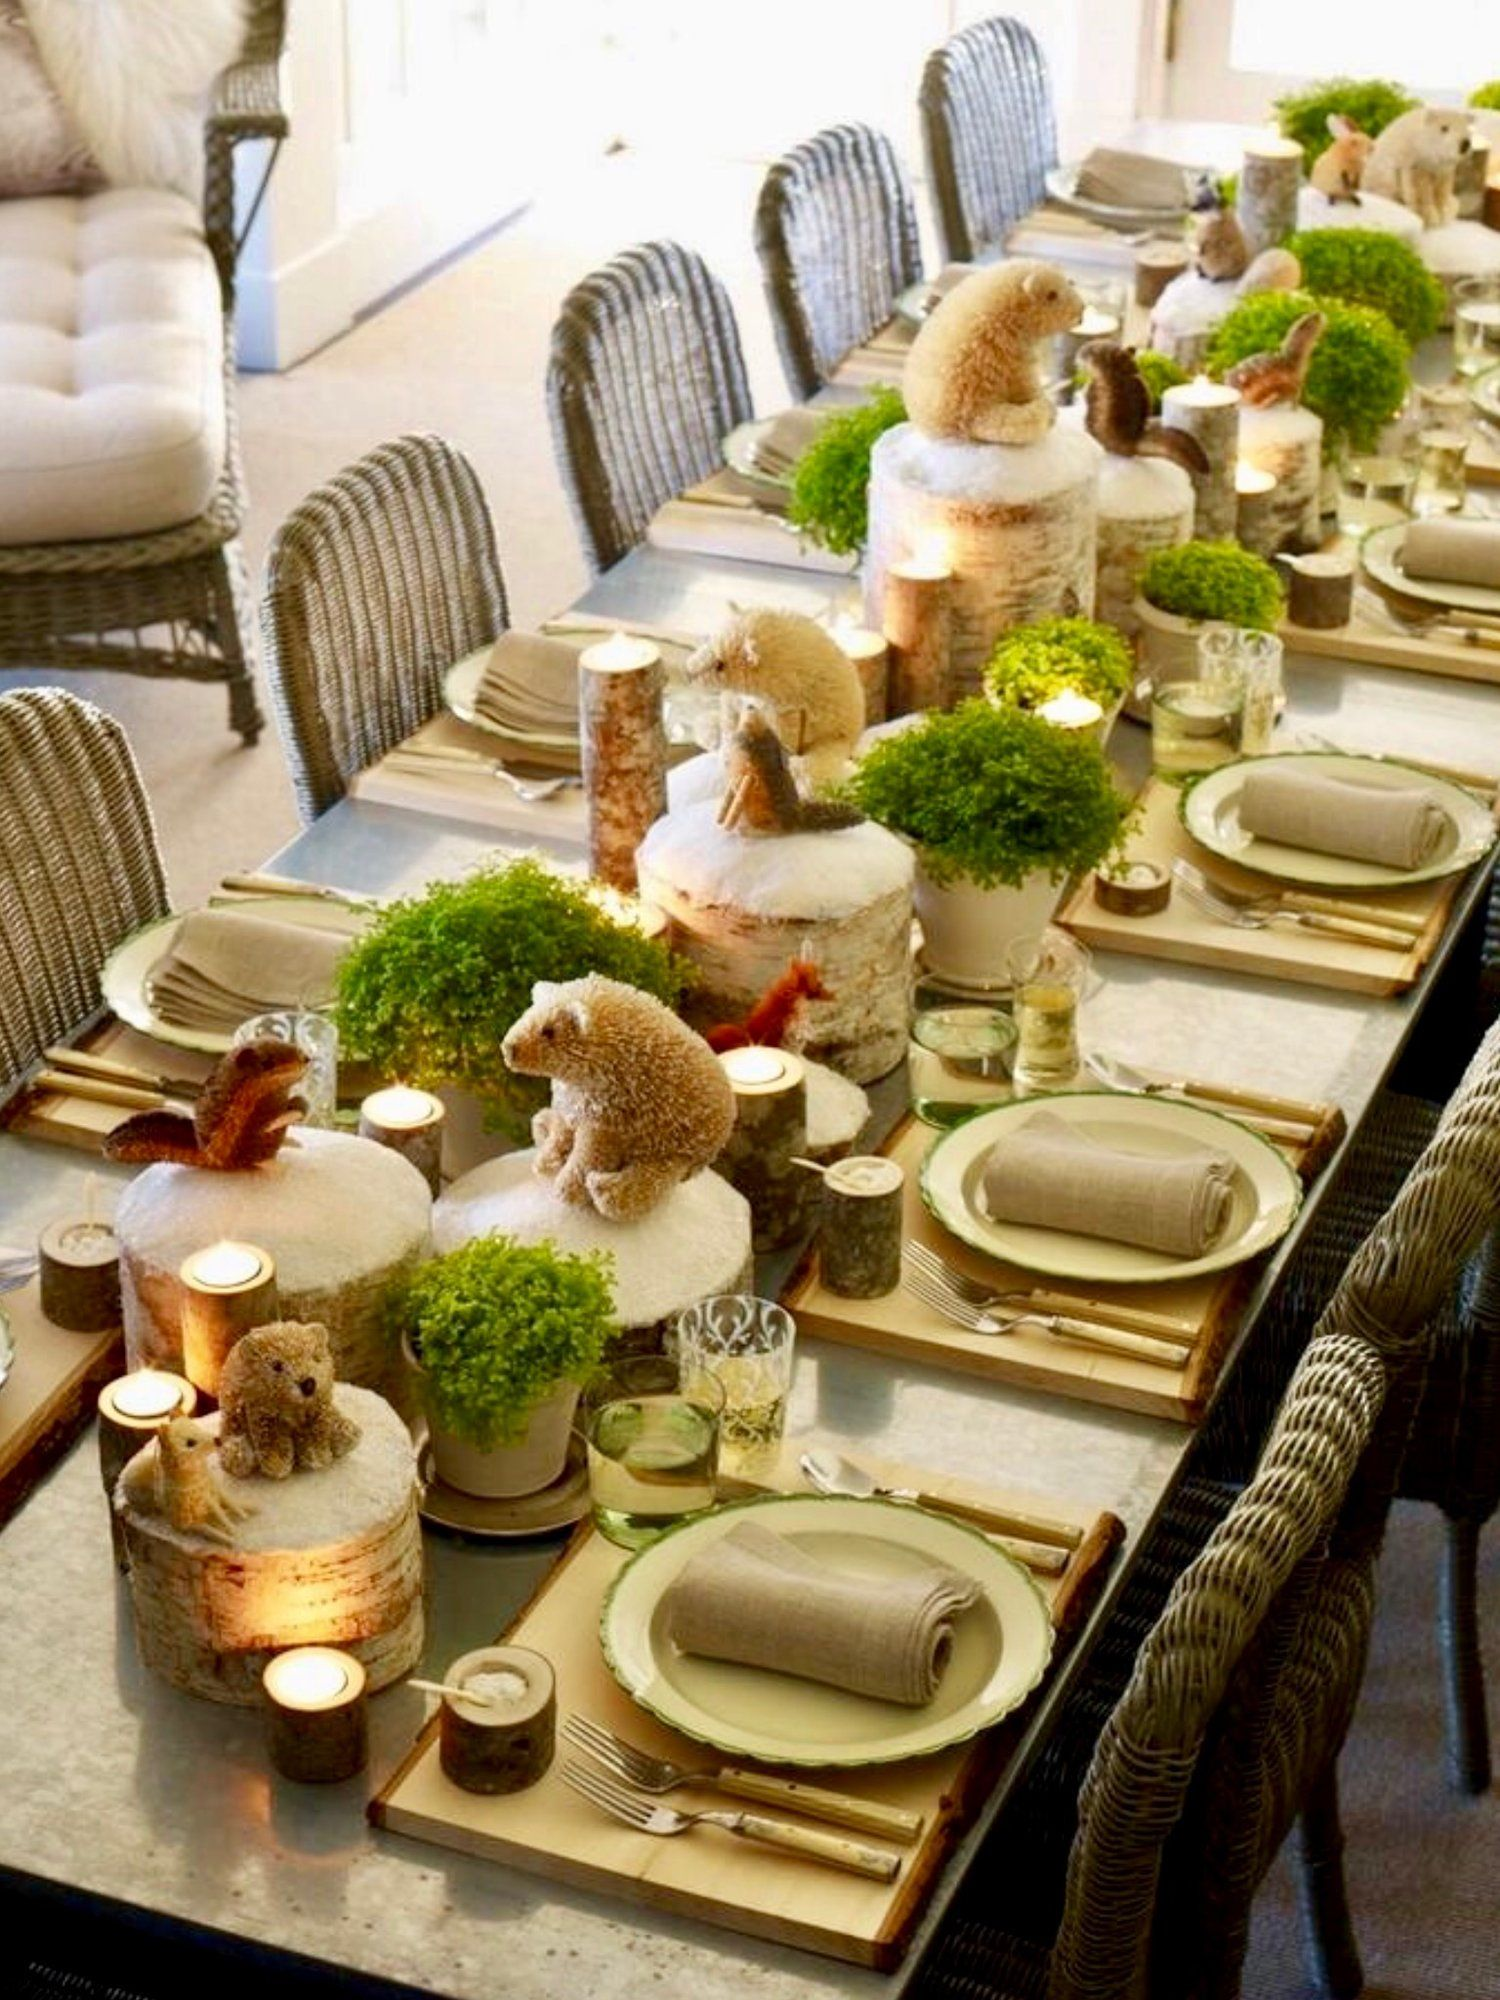 Top Christmas Table Decorations From Pinterest And Instagram Styleestate Christmas Table Decorations Christmas Table Settings Christmas Table